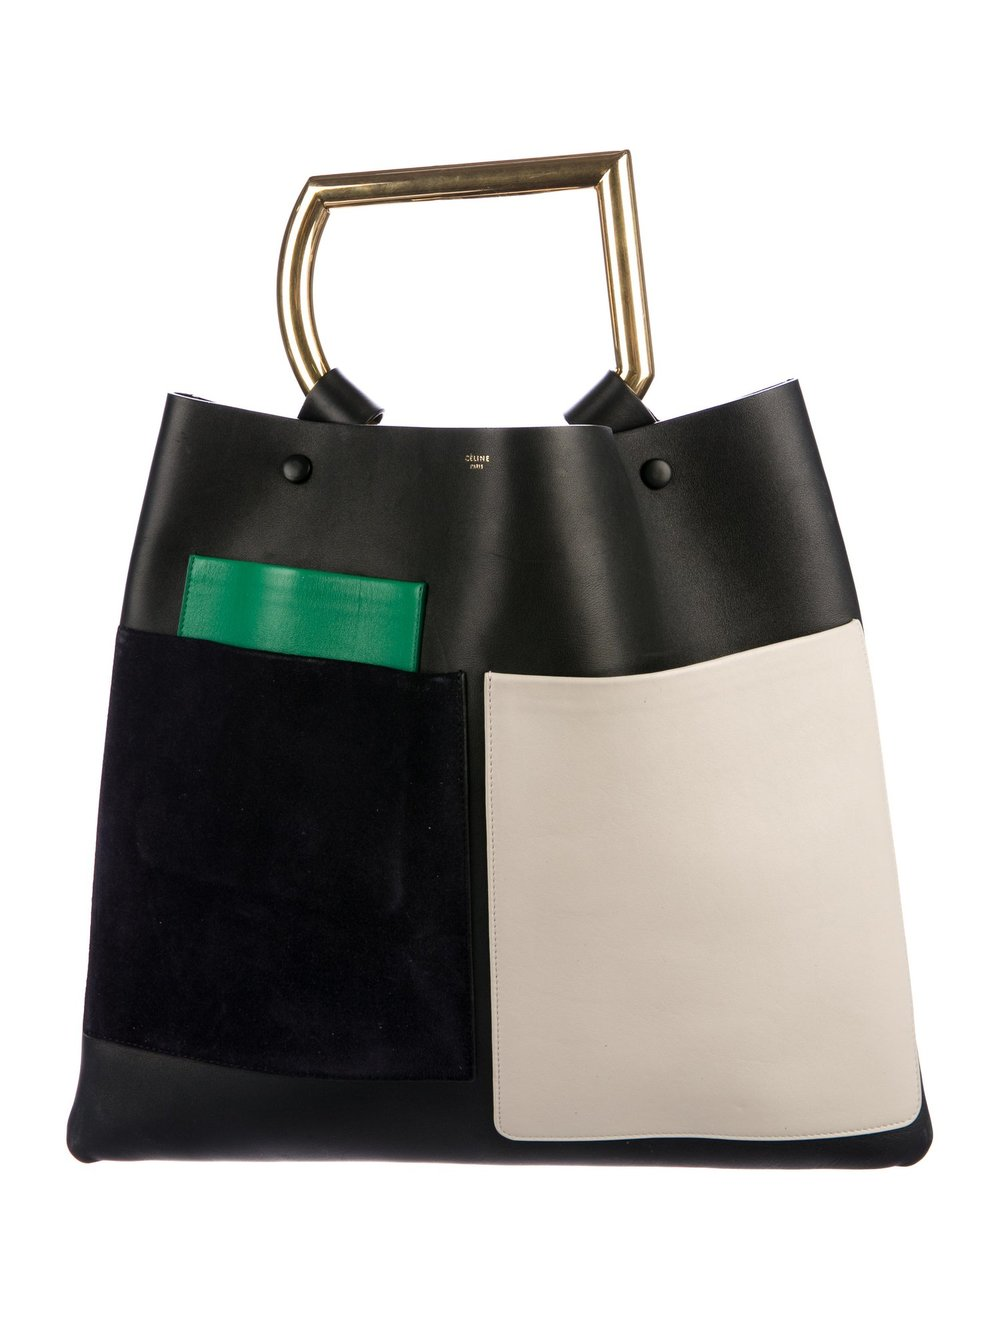 Copy of Céline Geometric Tote $2,100